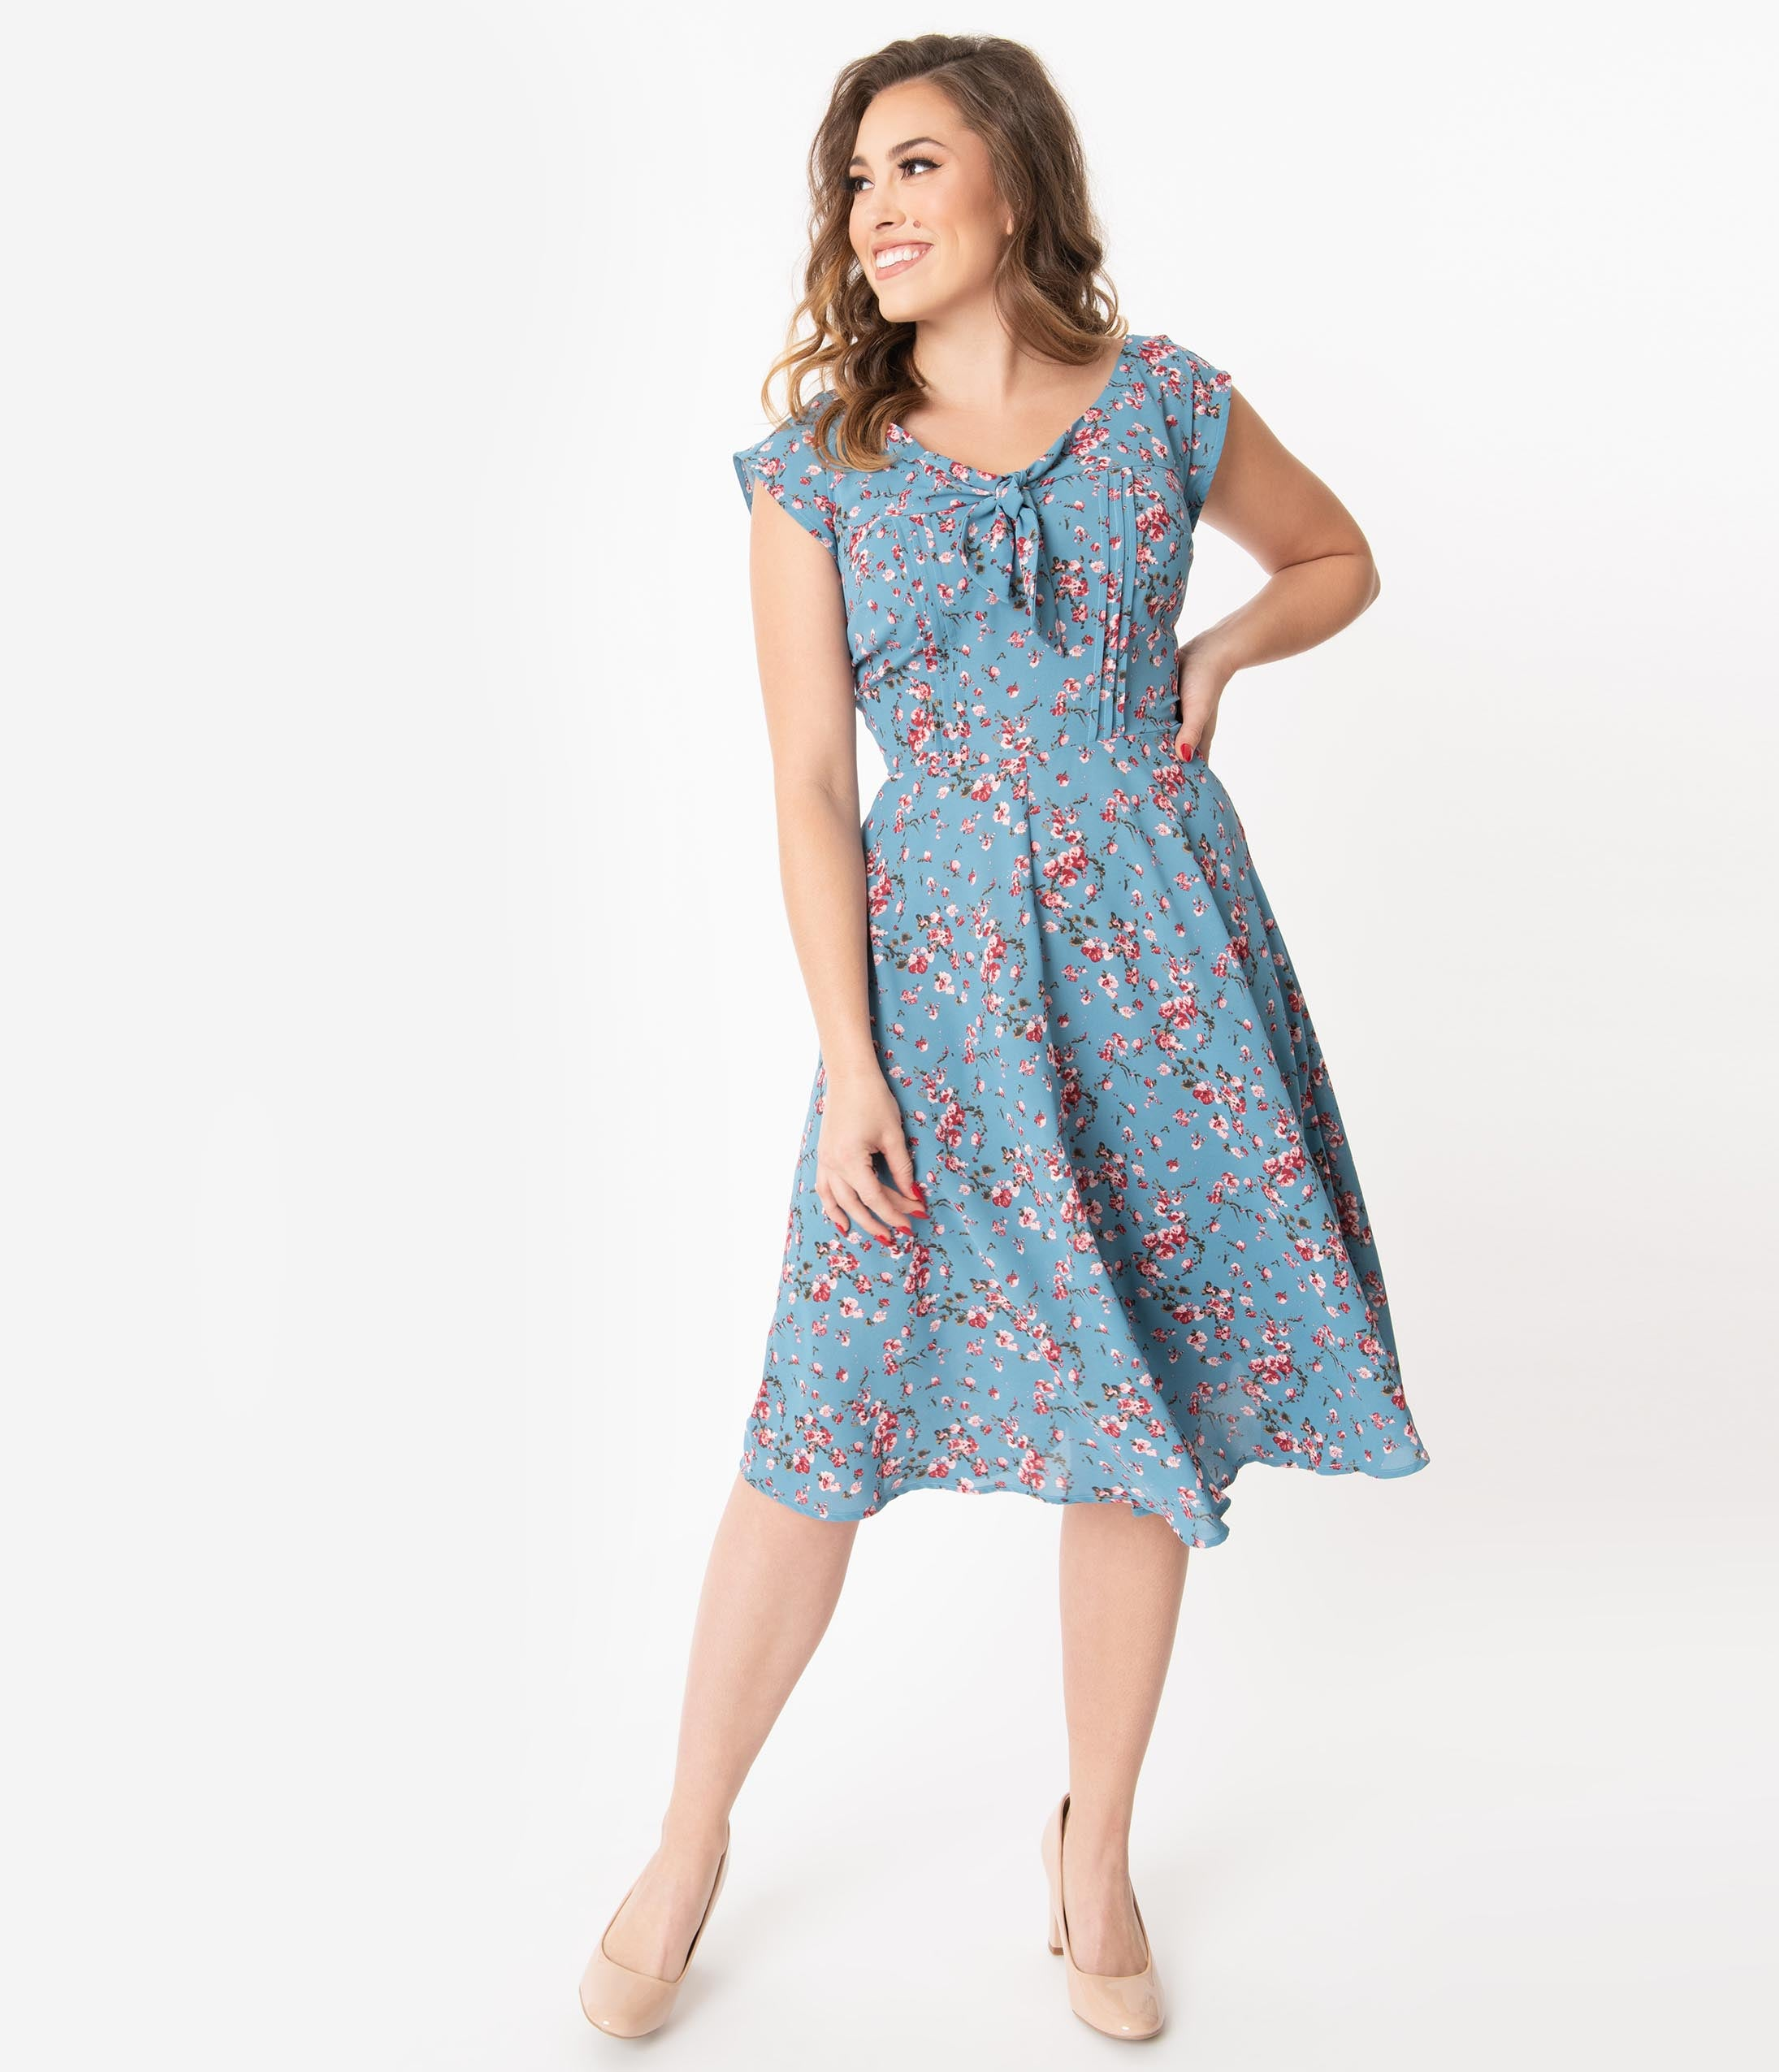 Swing Dance Clothing You Can Dance In Unique Vintage 1940S Chambray Blue  Pink Floral Print Havilland Dress $88.00 AT vintagedancer.com